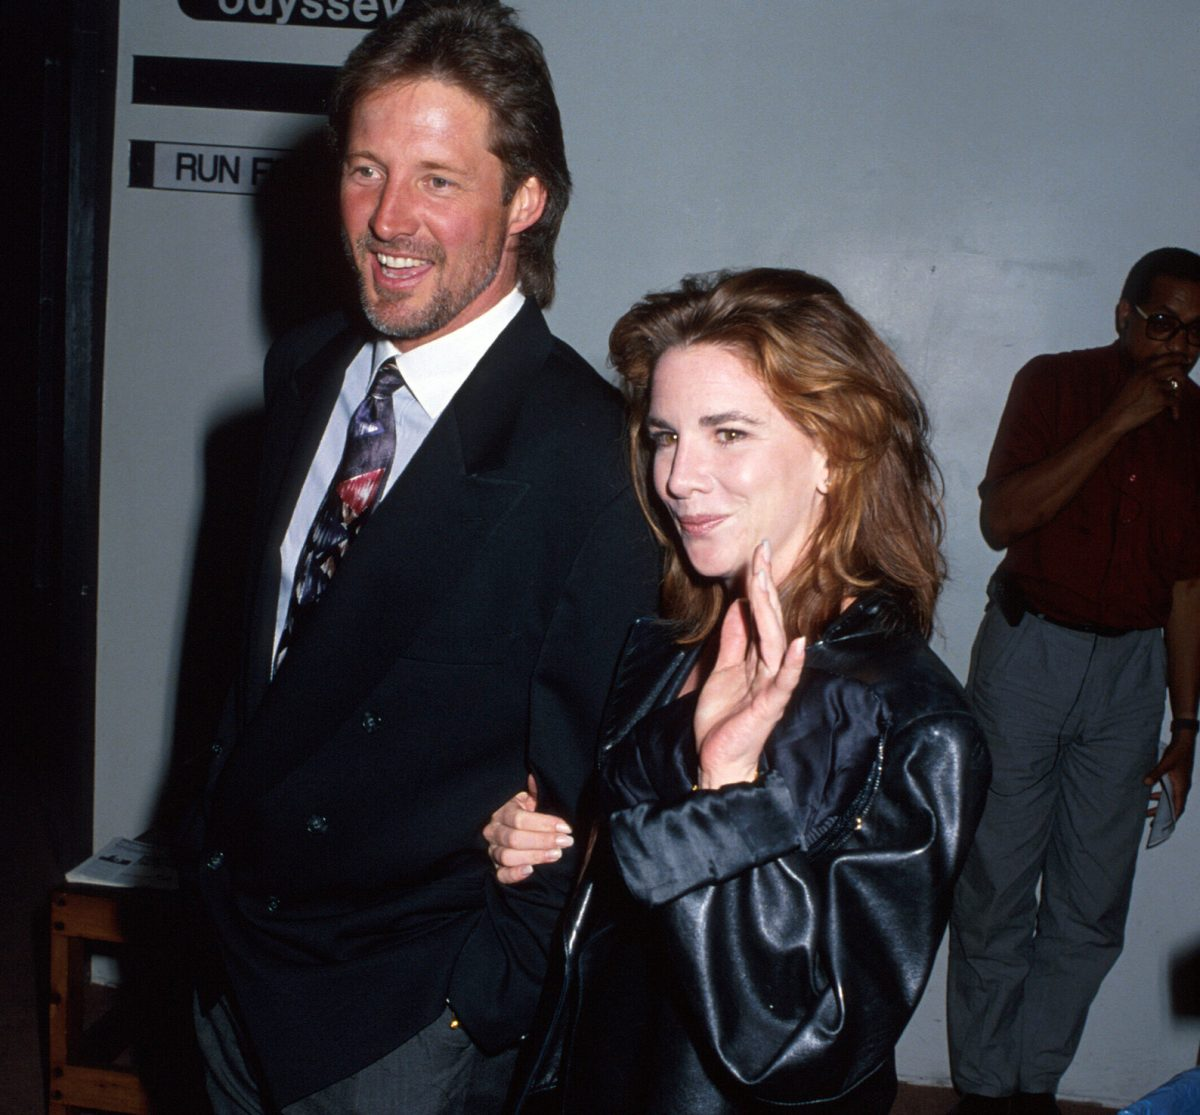 Bruce Boxleitner and Melissa Gilbert — Gilbert is holding Boxleitner's arm, smiling and waving.